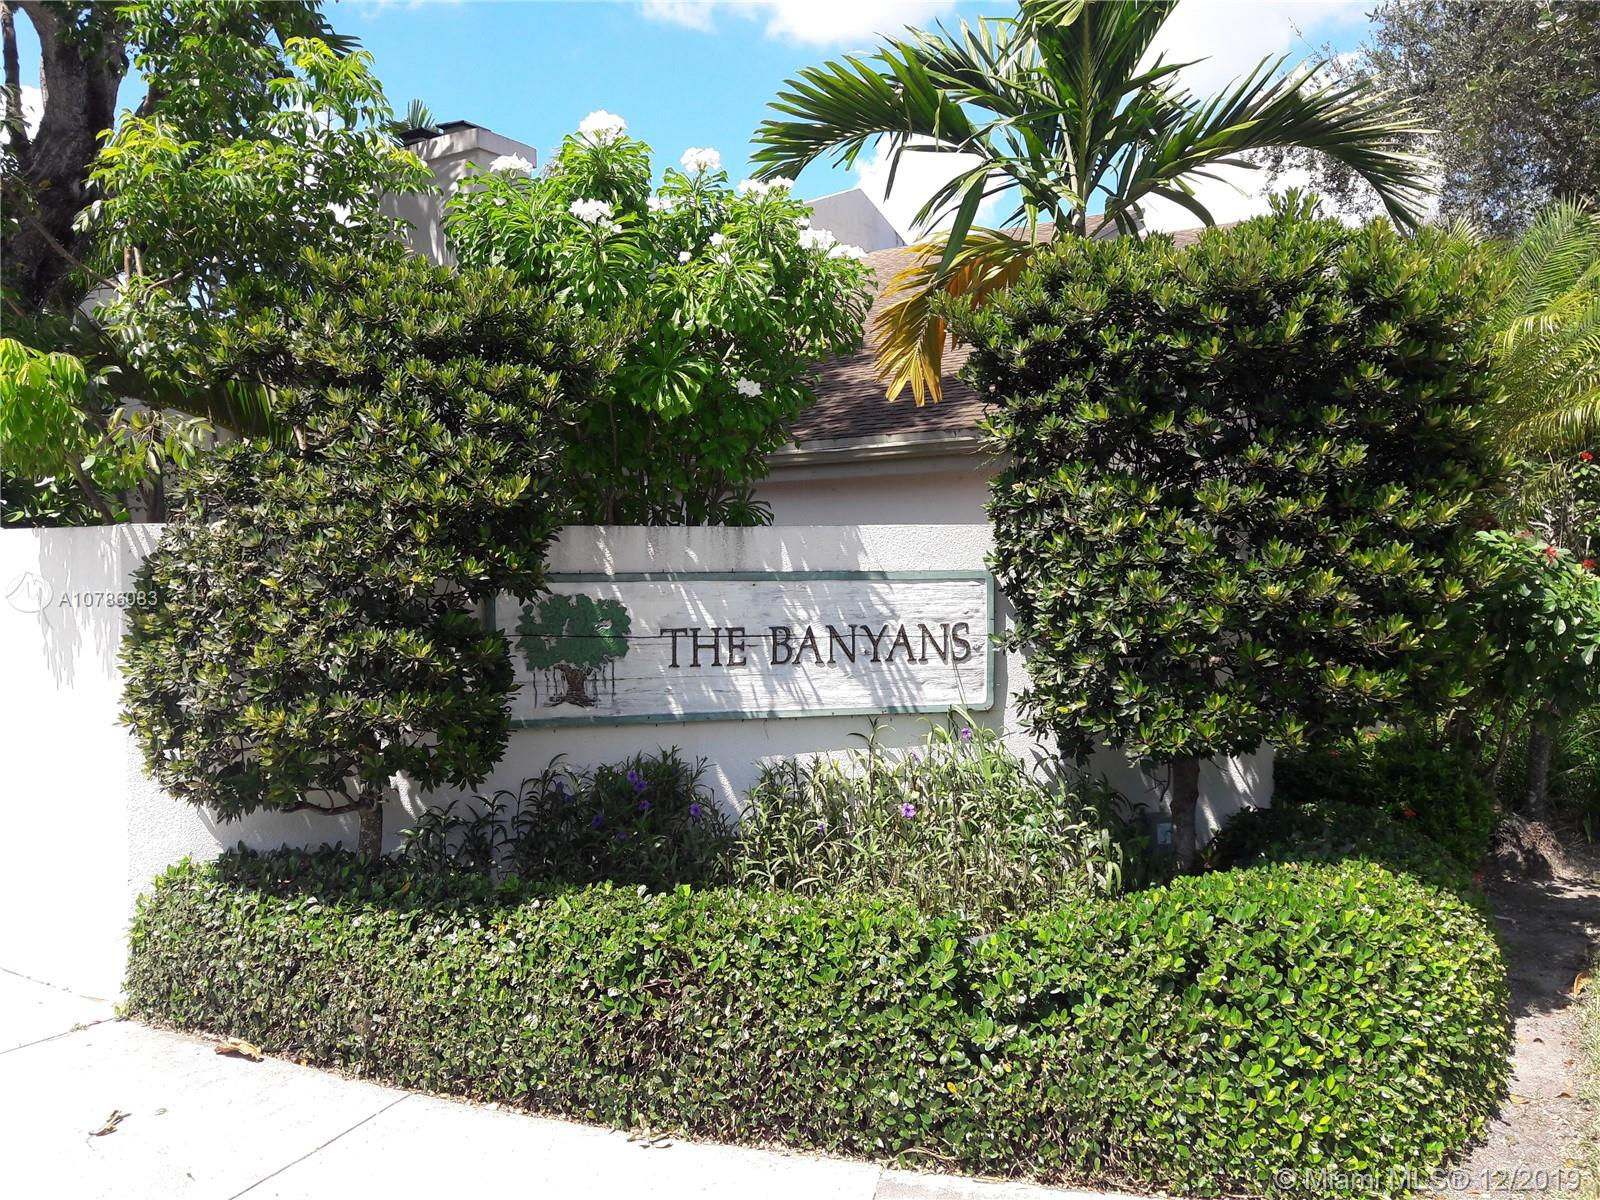 The Banyans of South Miami a private community of townhomes at the intersection of Ludam Rd and Sunset Dr. Spacious 2 story Townhome features ample front and back yard, 3 bedroom and 2.5 bathrooms plus a bonus room as a study or playroom. Spacious kitchen with an enormous island of the kitchen with a formal dining room and fireplace. A screened balcony of the master bedroom on the second floor with 2 more spacious bedrooms. Updated bathrooms and kitchen with all new appliances and fixtures. This townhome is move-in ready. Hardwood flooring throughout the second floor with steps and tile on the first. Newer A/C, Newer Roof, Hurricane Shutters. Community Pool, Tennis Courts. 1 Detached Garage and Dedicated Parking, Guest Parking. Best Location in South Miami minutes to all the City Offers.